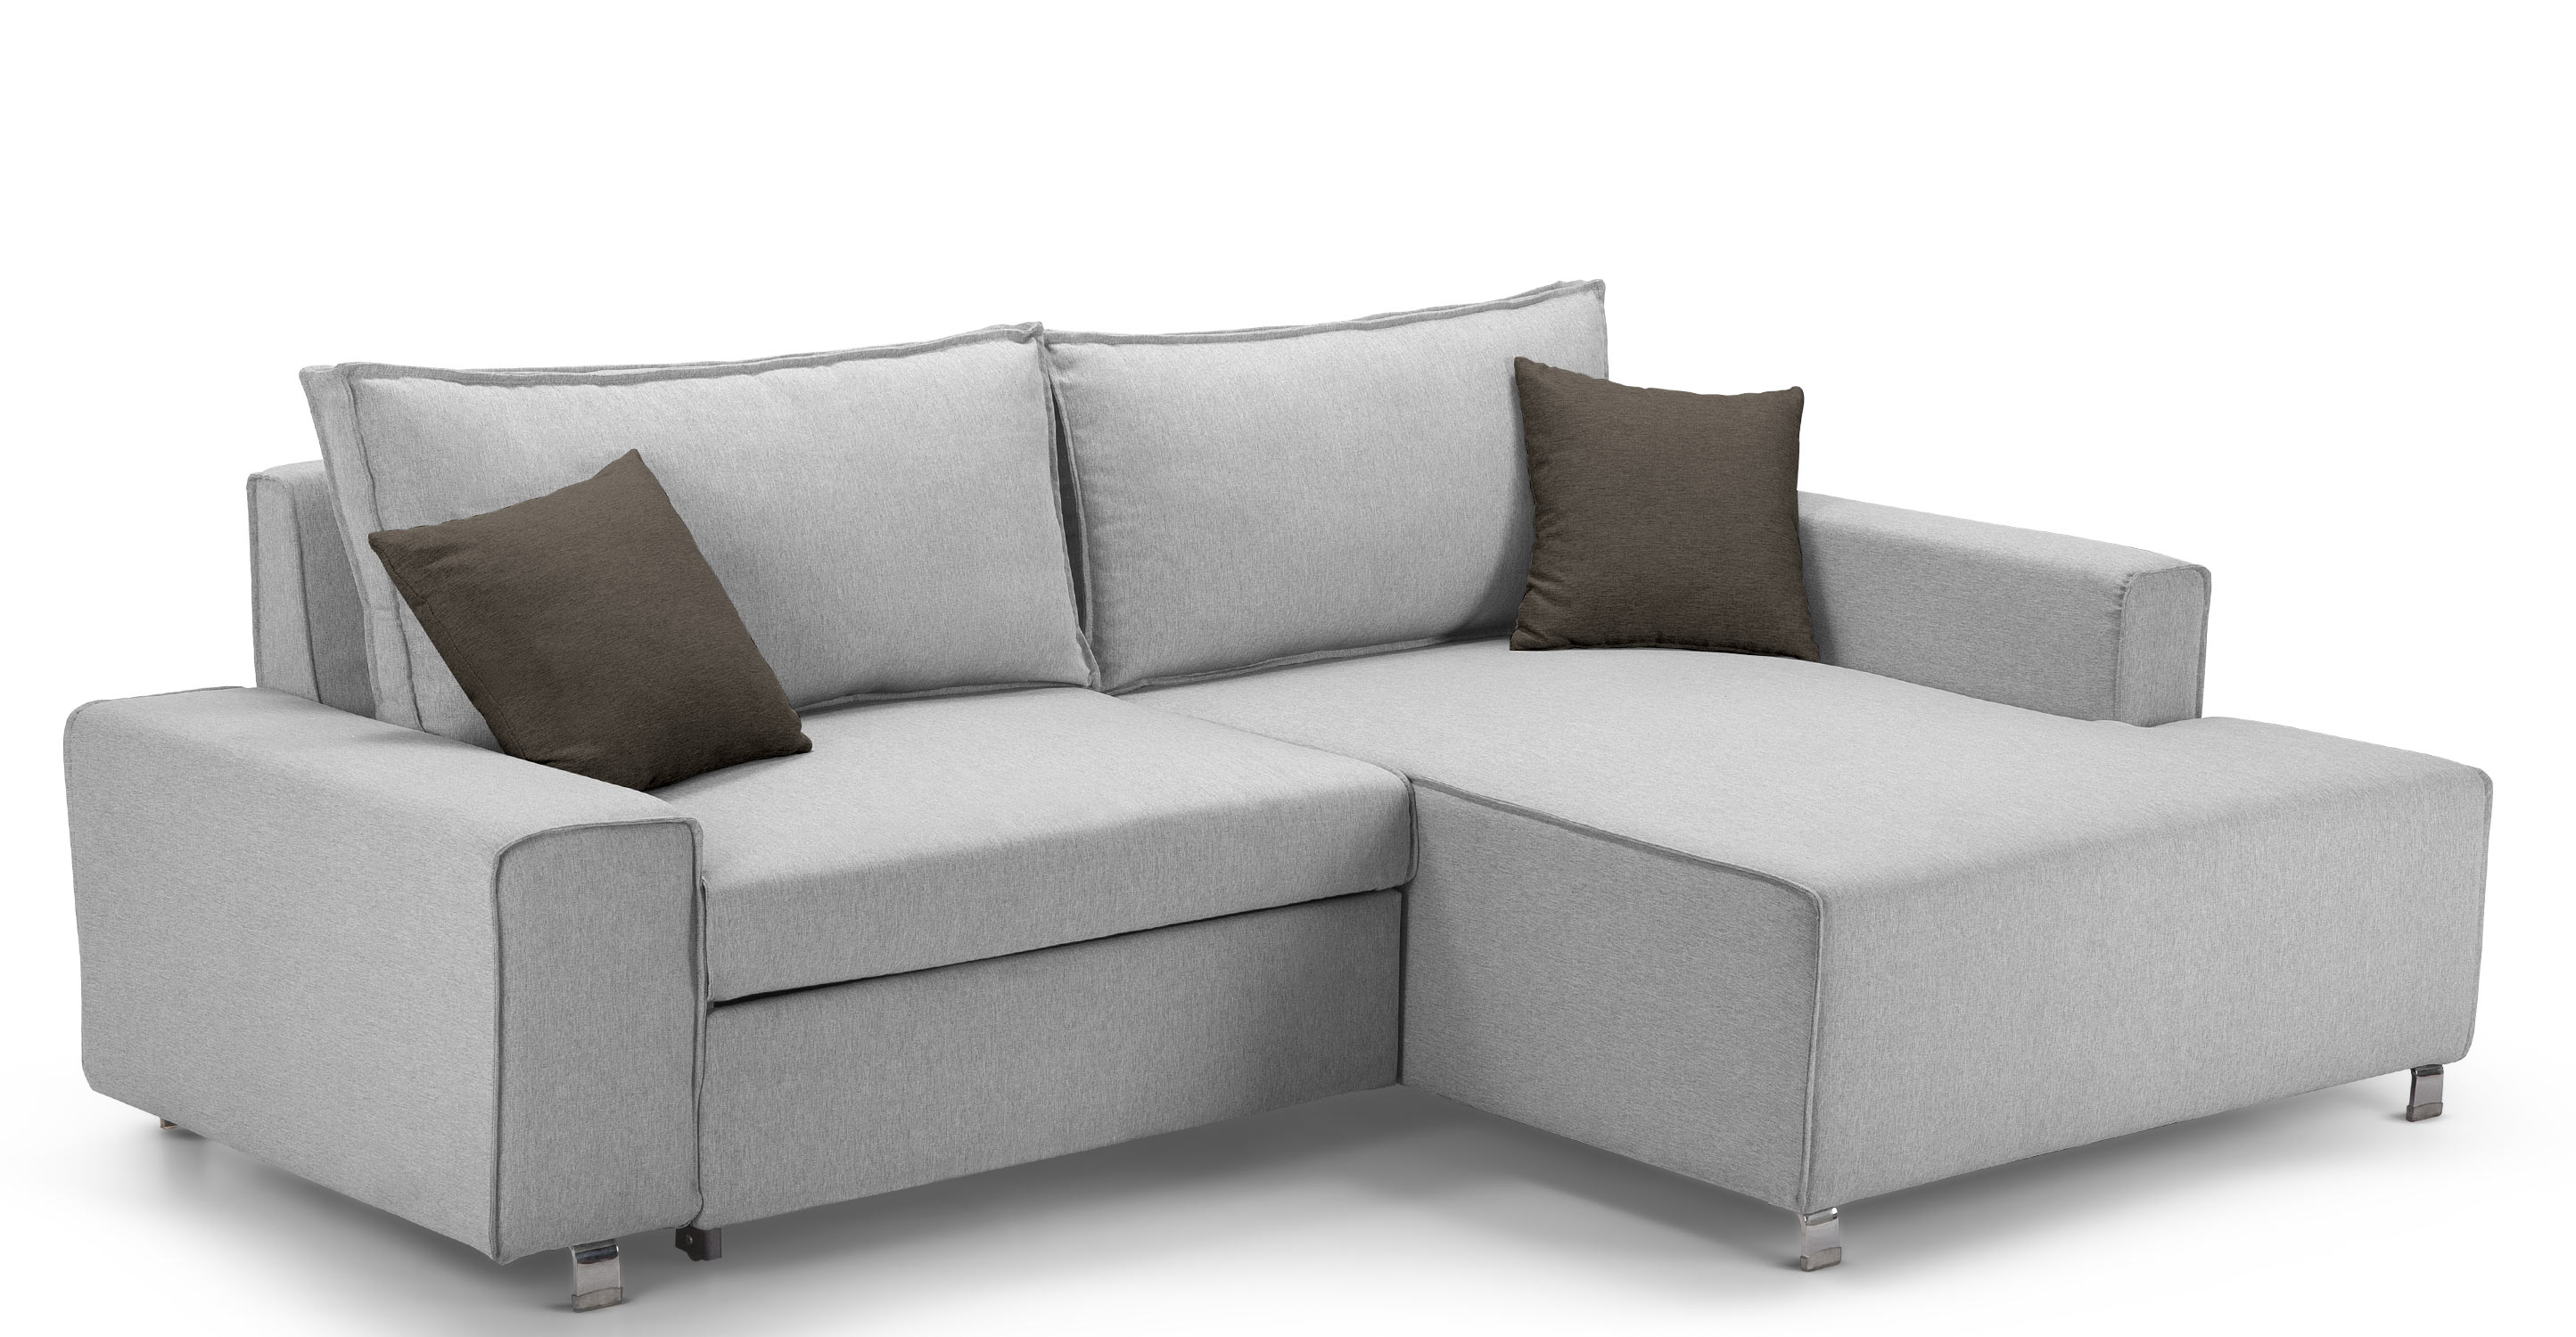 Fine Cheap Small Corner Sofa My Couch Is Pretty Beatyapartments Chair Design Images Beatyapartmentscom